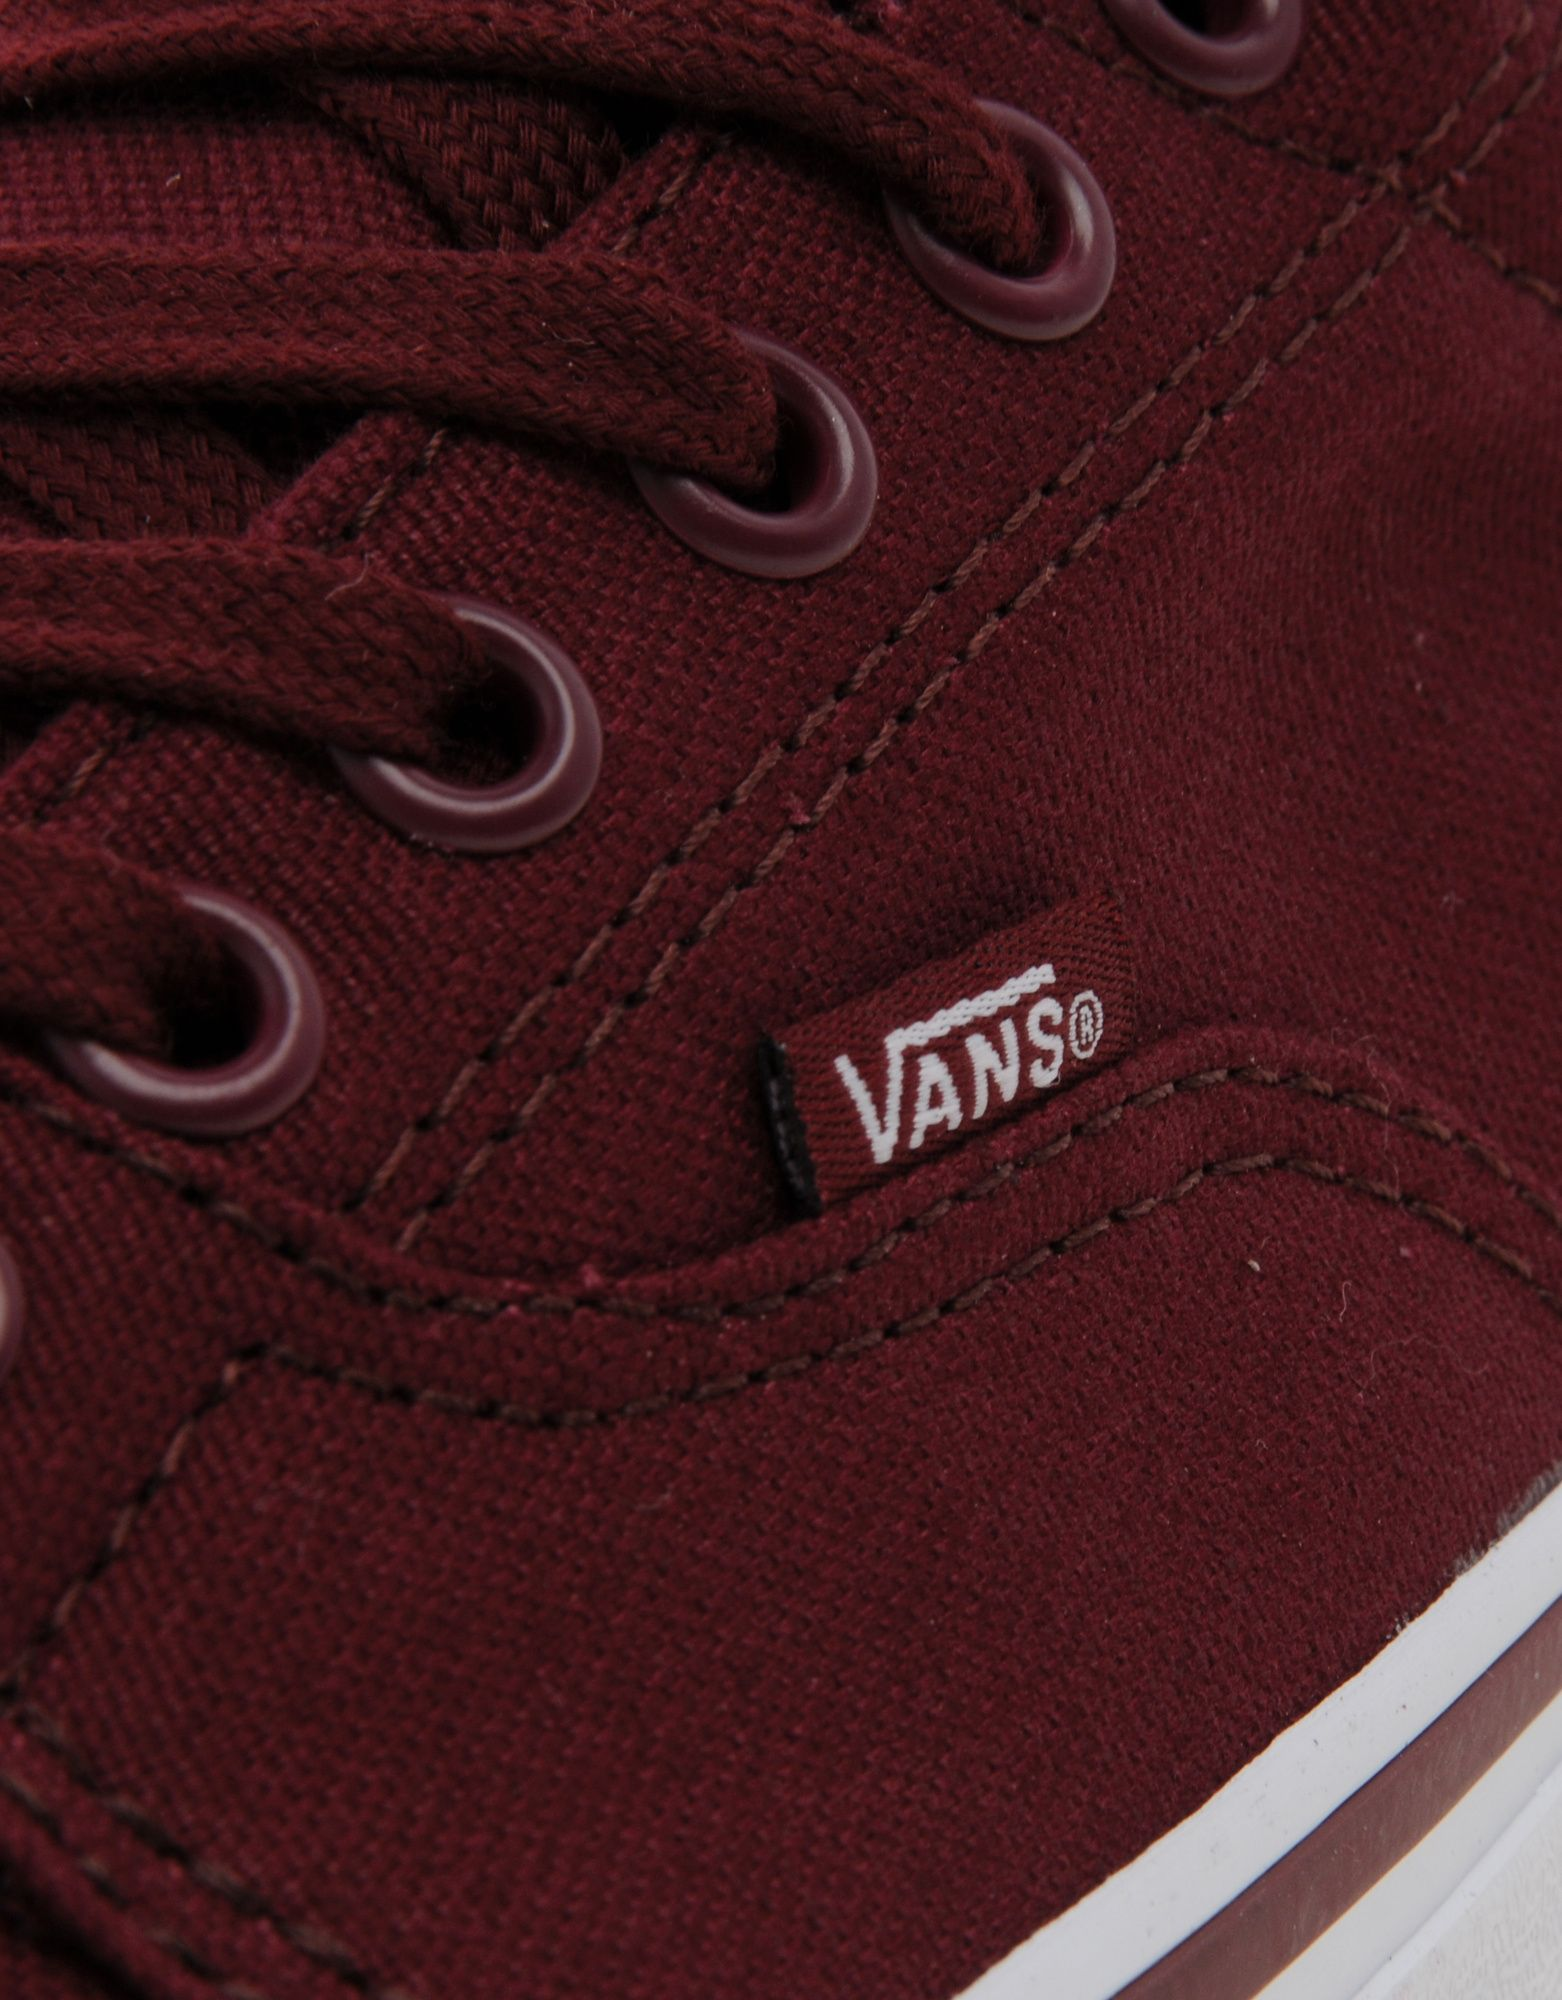 Vans Kress Trainers